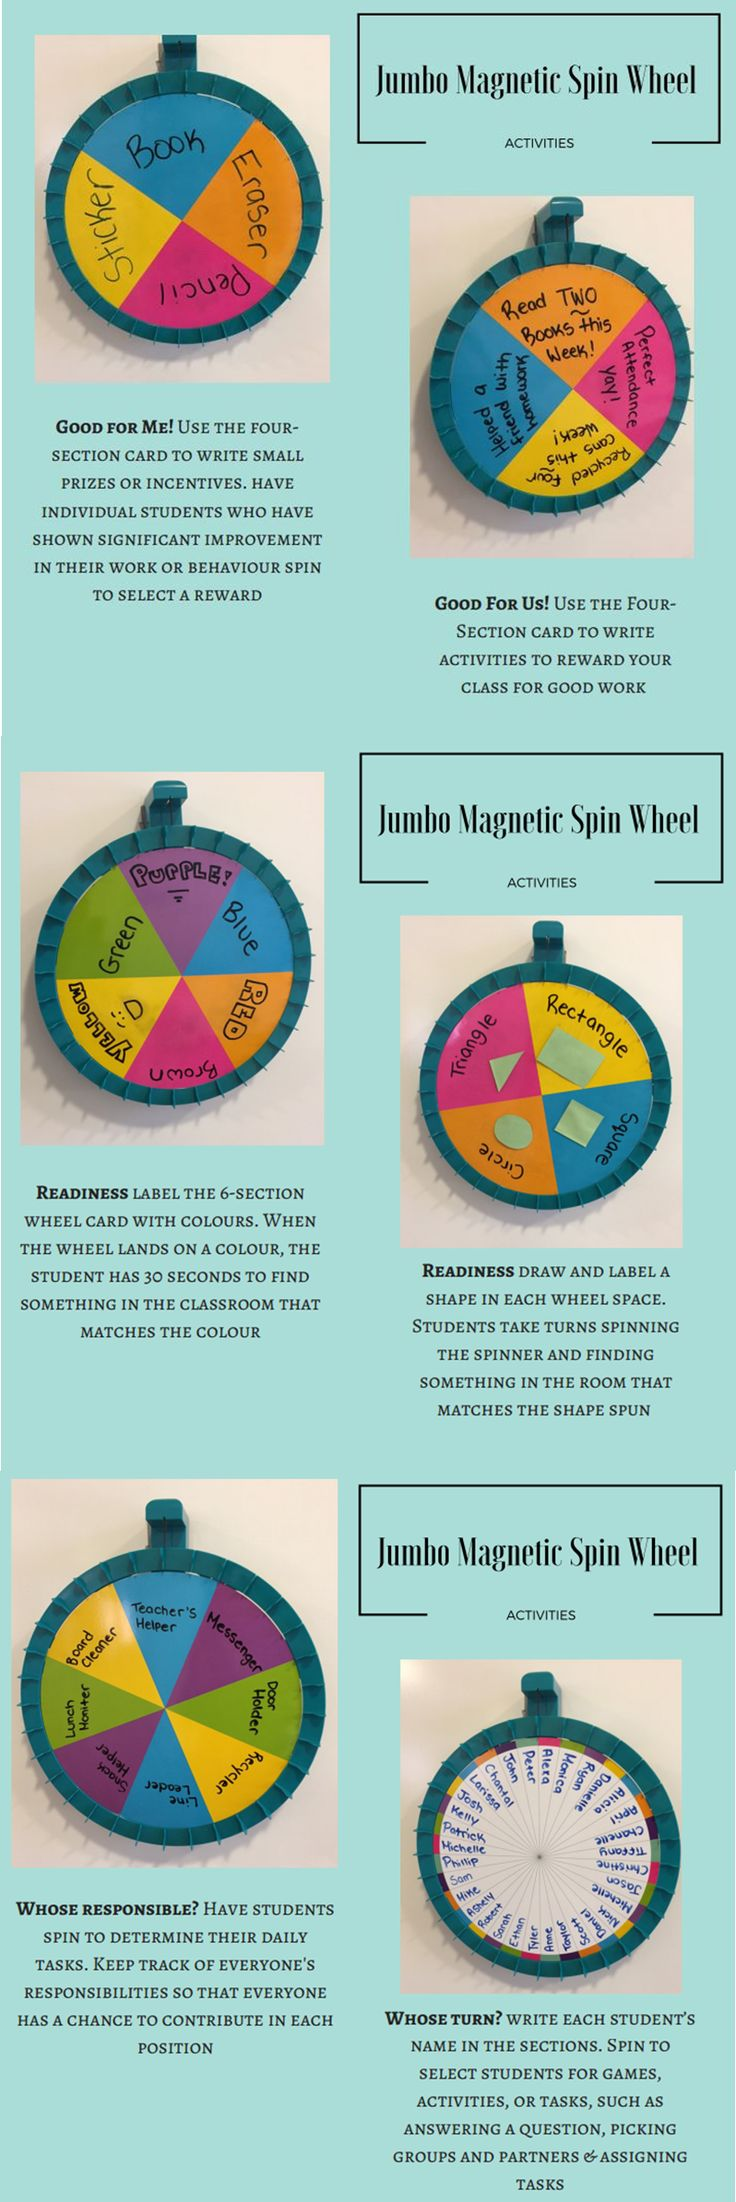 Turn your whiteboard into an activity center for classroom management with the Jumbo Magnetic Spin Wheel! Find this in the Classroom Essentials Catalogue: OPUS 2404325 Page 41 See the pages here: http://www.scholastic.ca/clubs/cec/